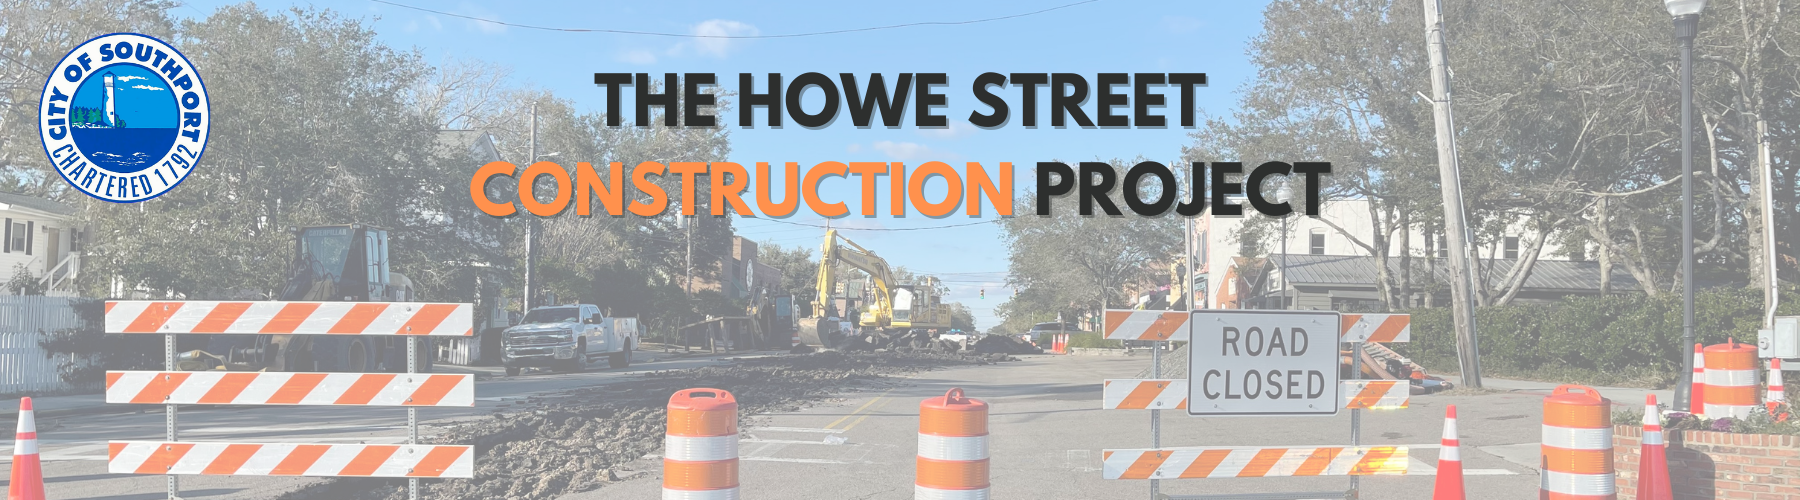 Howe Street Construction